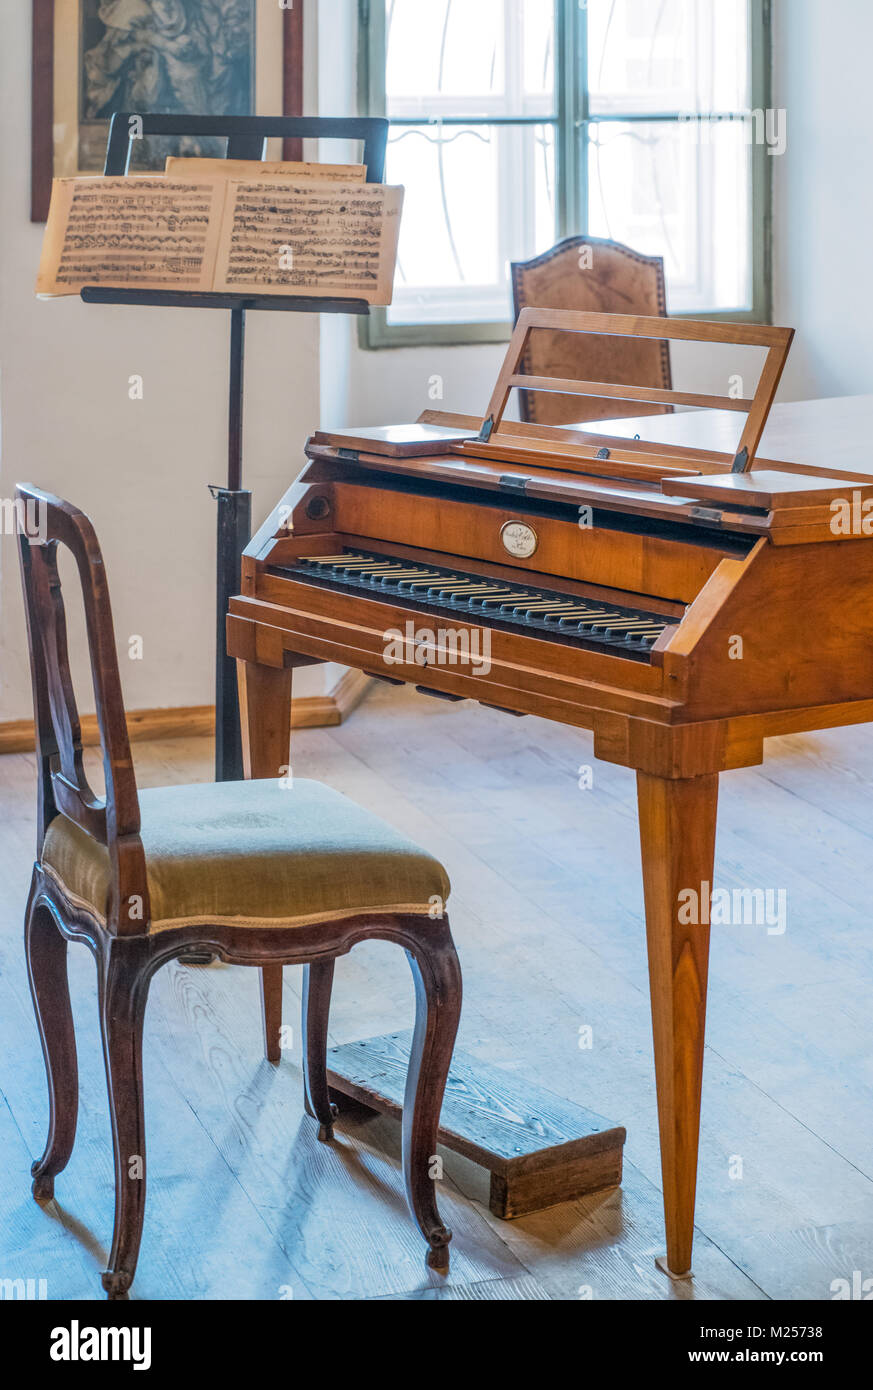 Austria, Salzburg, An ancient harpsichord in the W. A. Mozart home - Stock Image